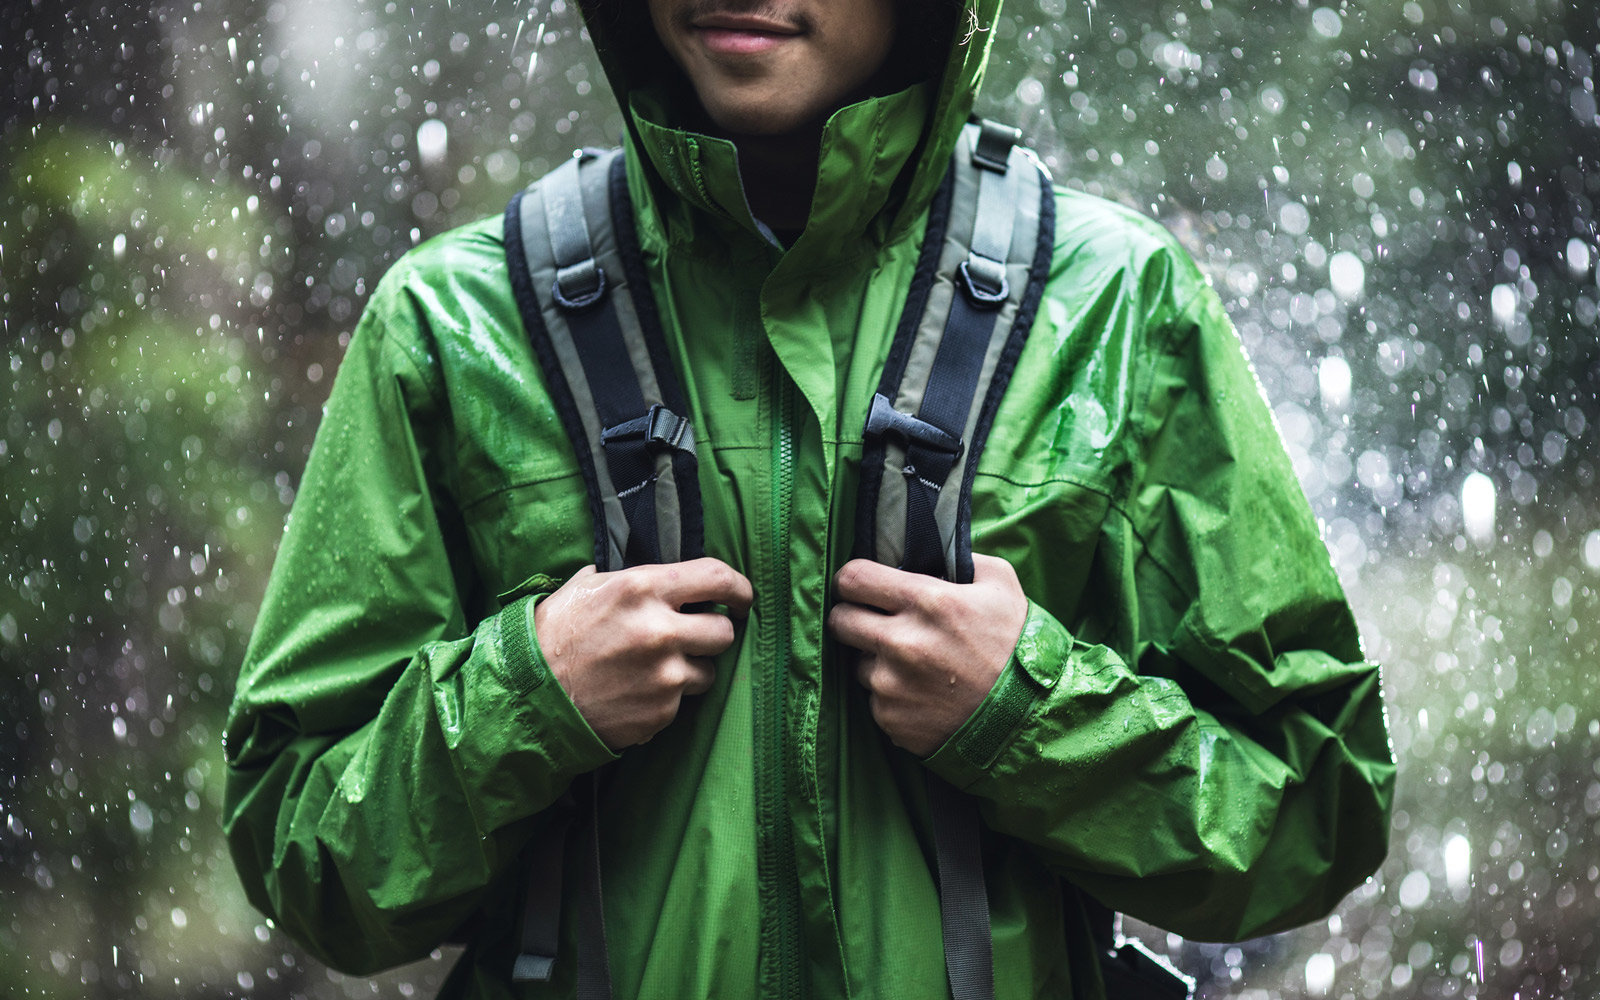 How to Waterproof Your Travel Gear — From Shoes to Bags